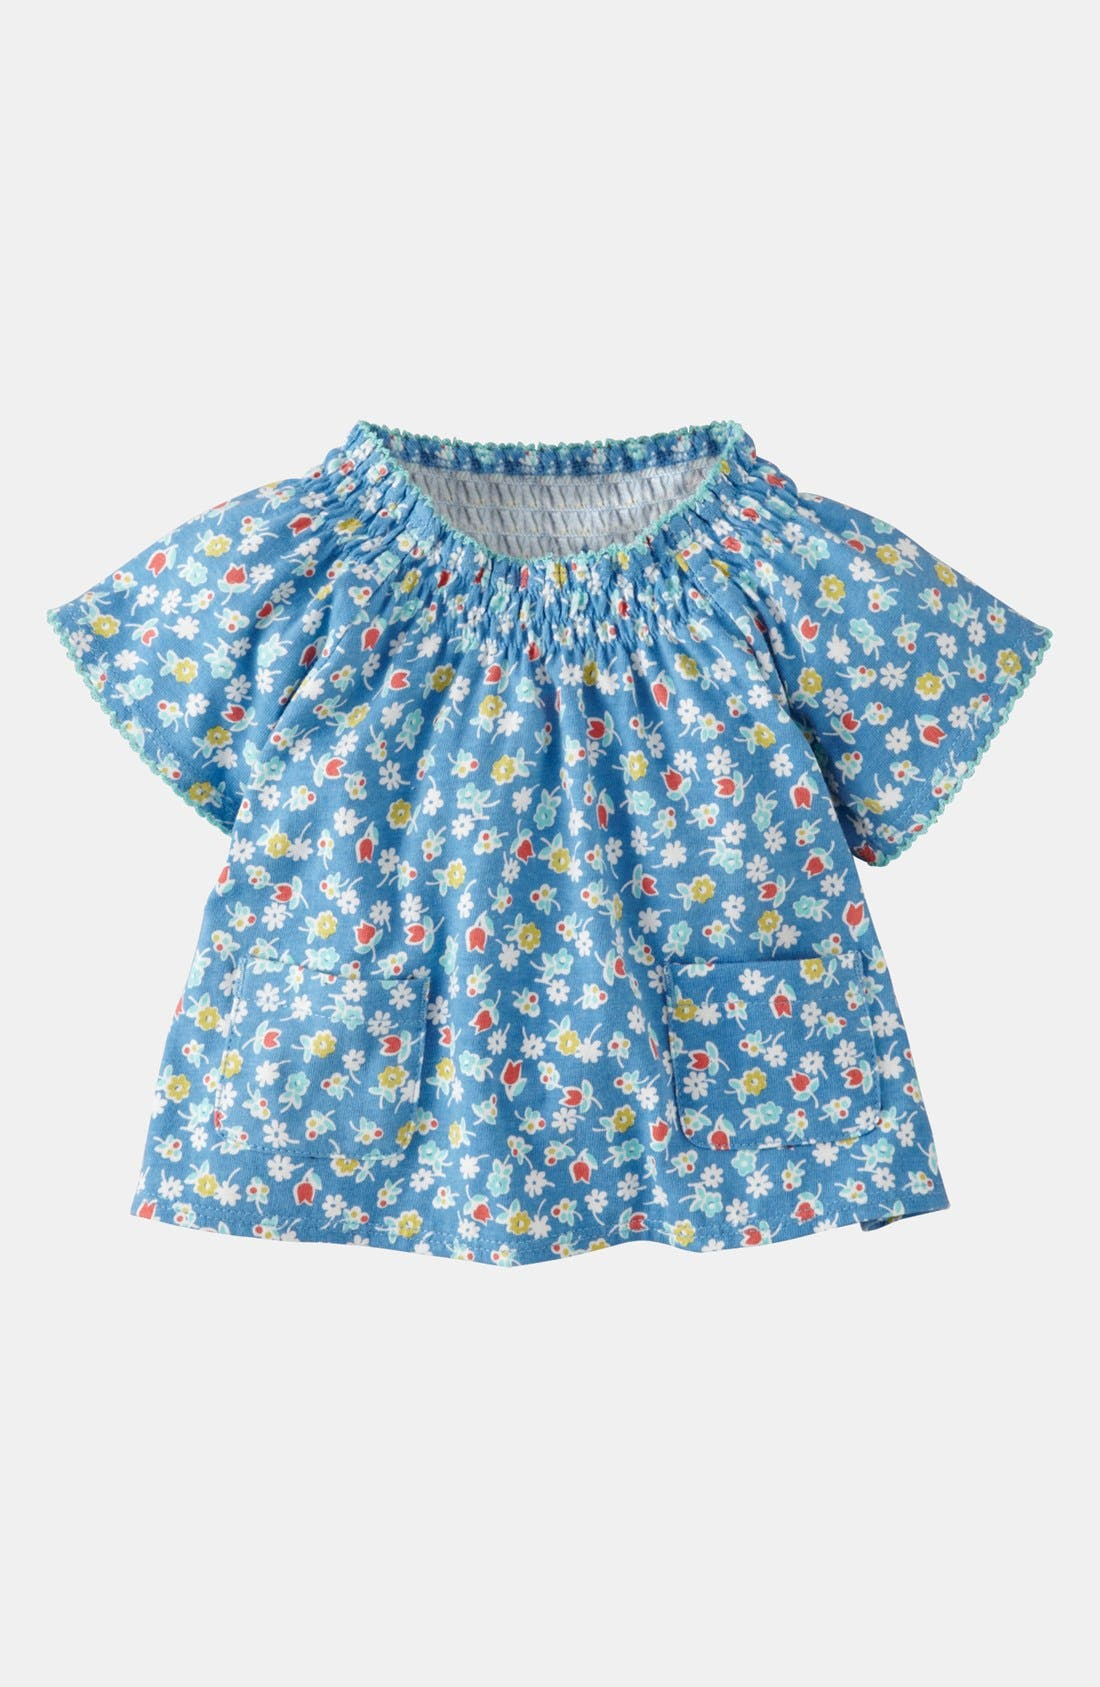 Alternate Image 1 Selected - Mini Boden Ditsy Print Top (Baby)